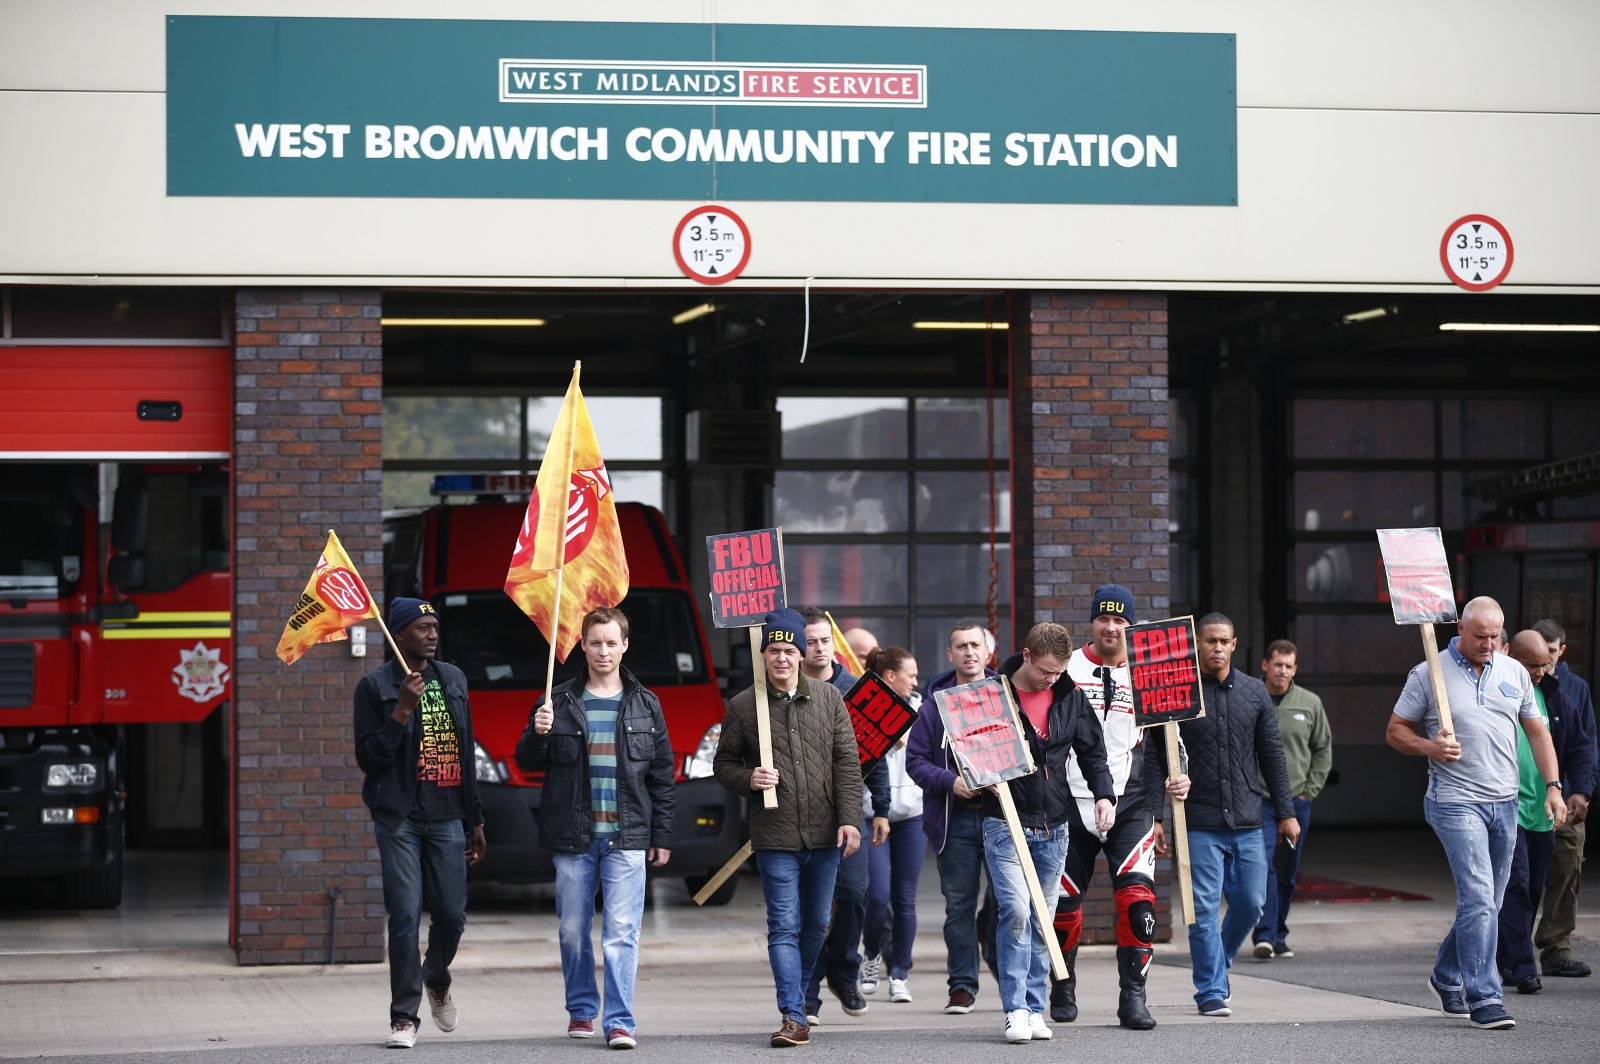 FBU strike